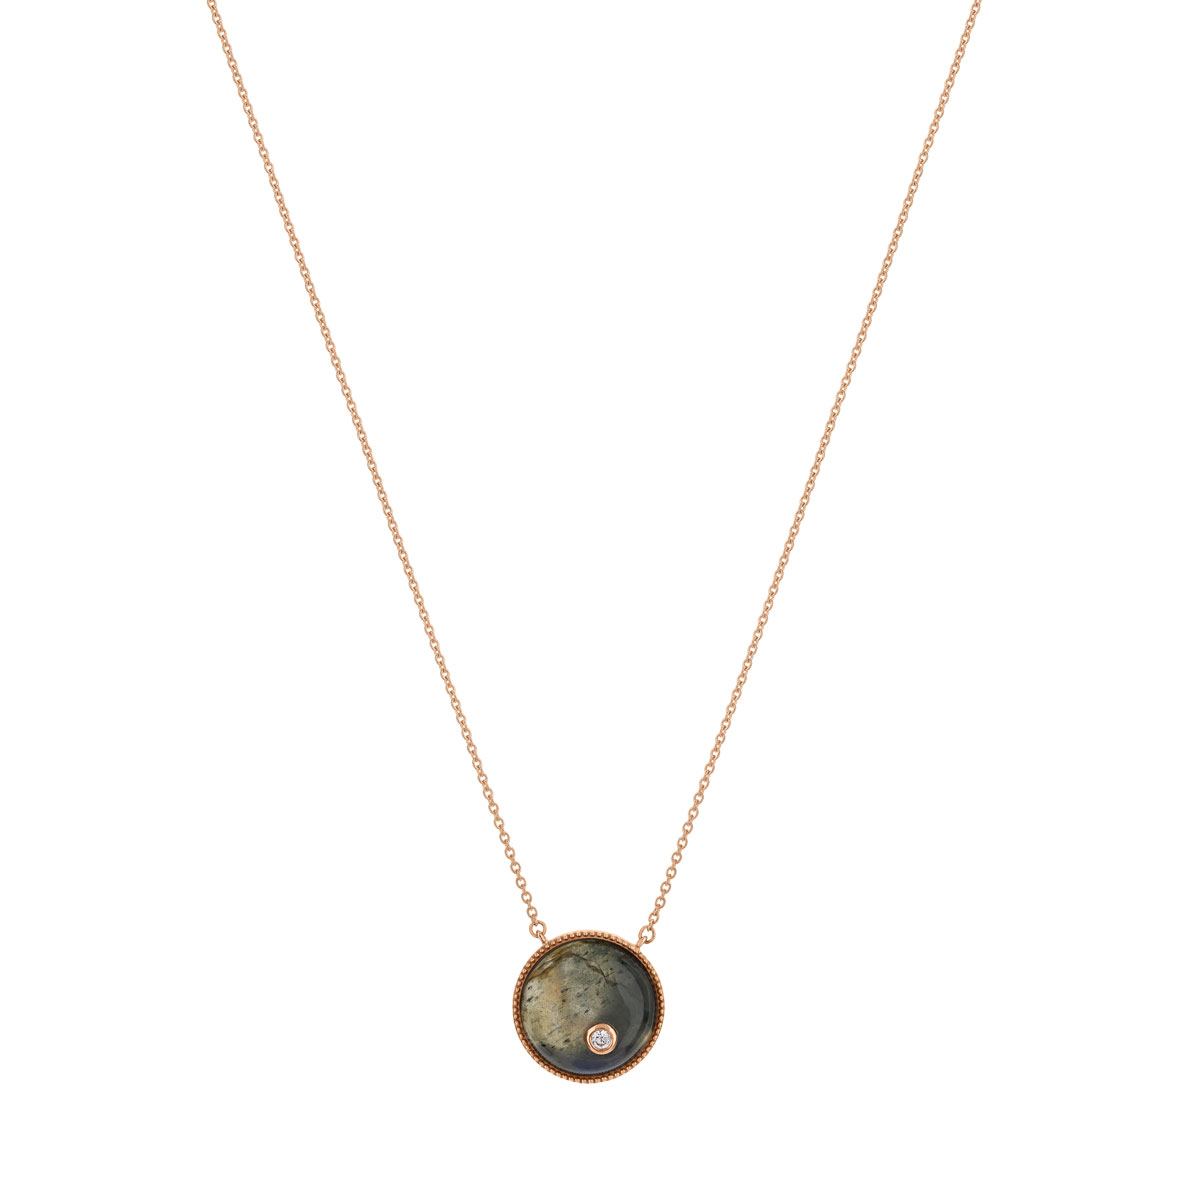 Collier or 375 rose labradorite et zirconia - vue V1